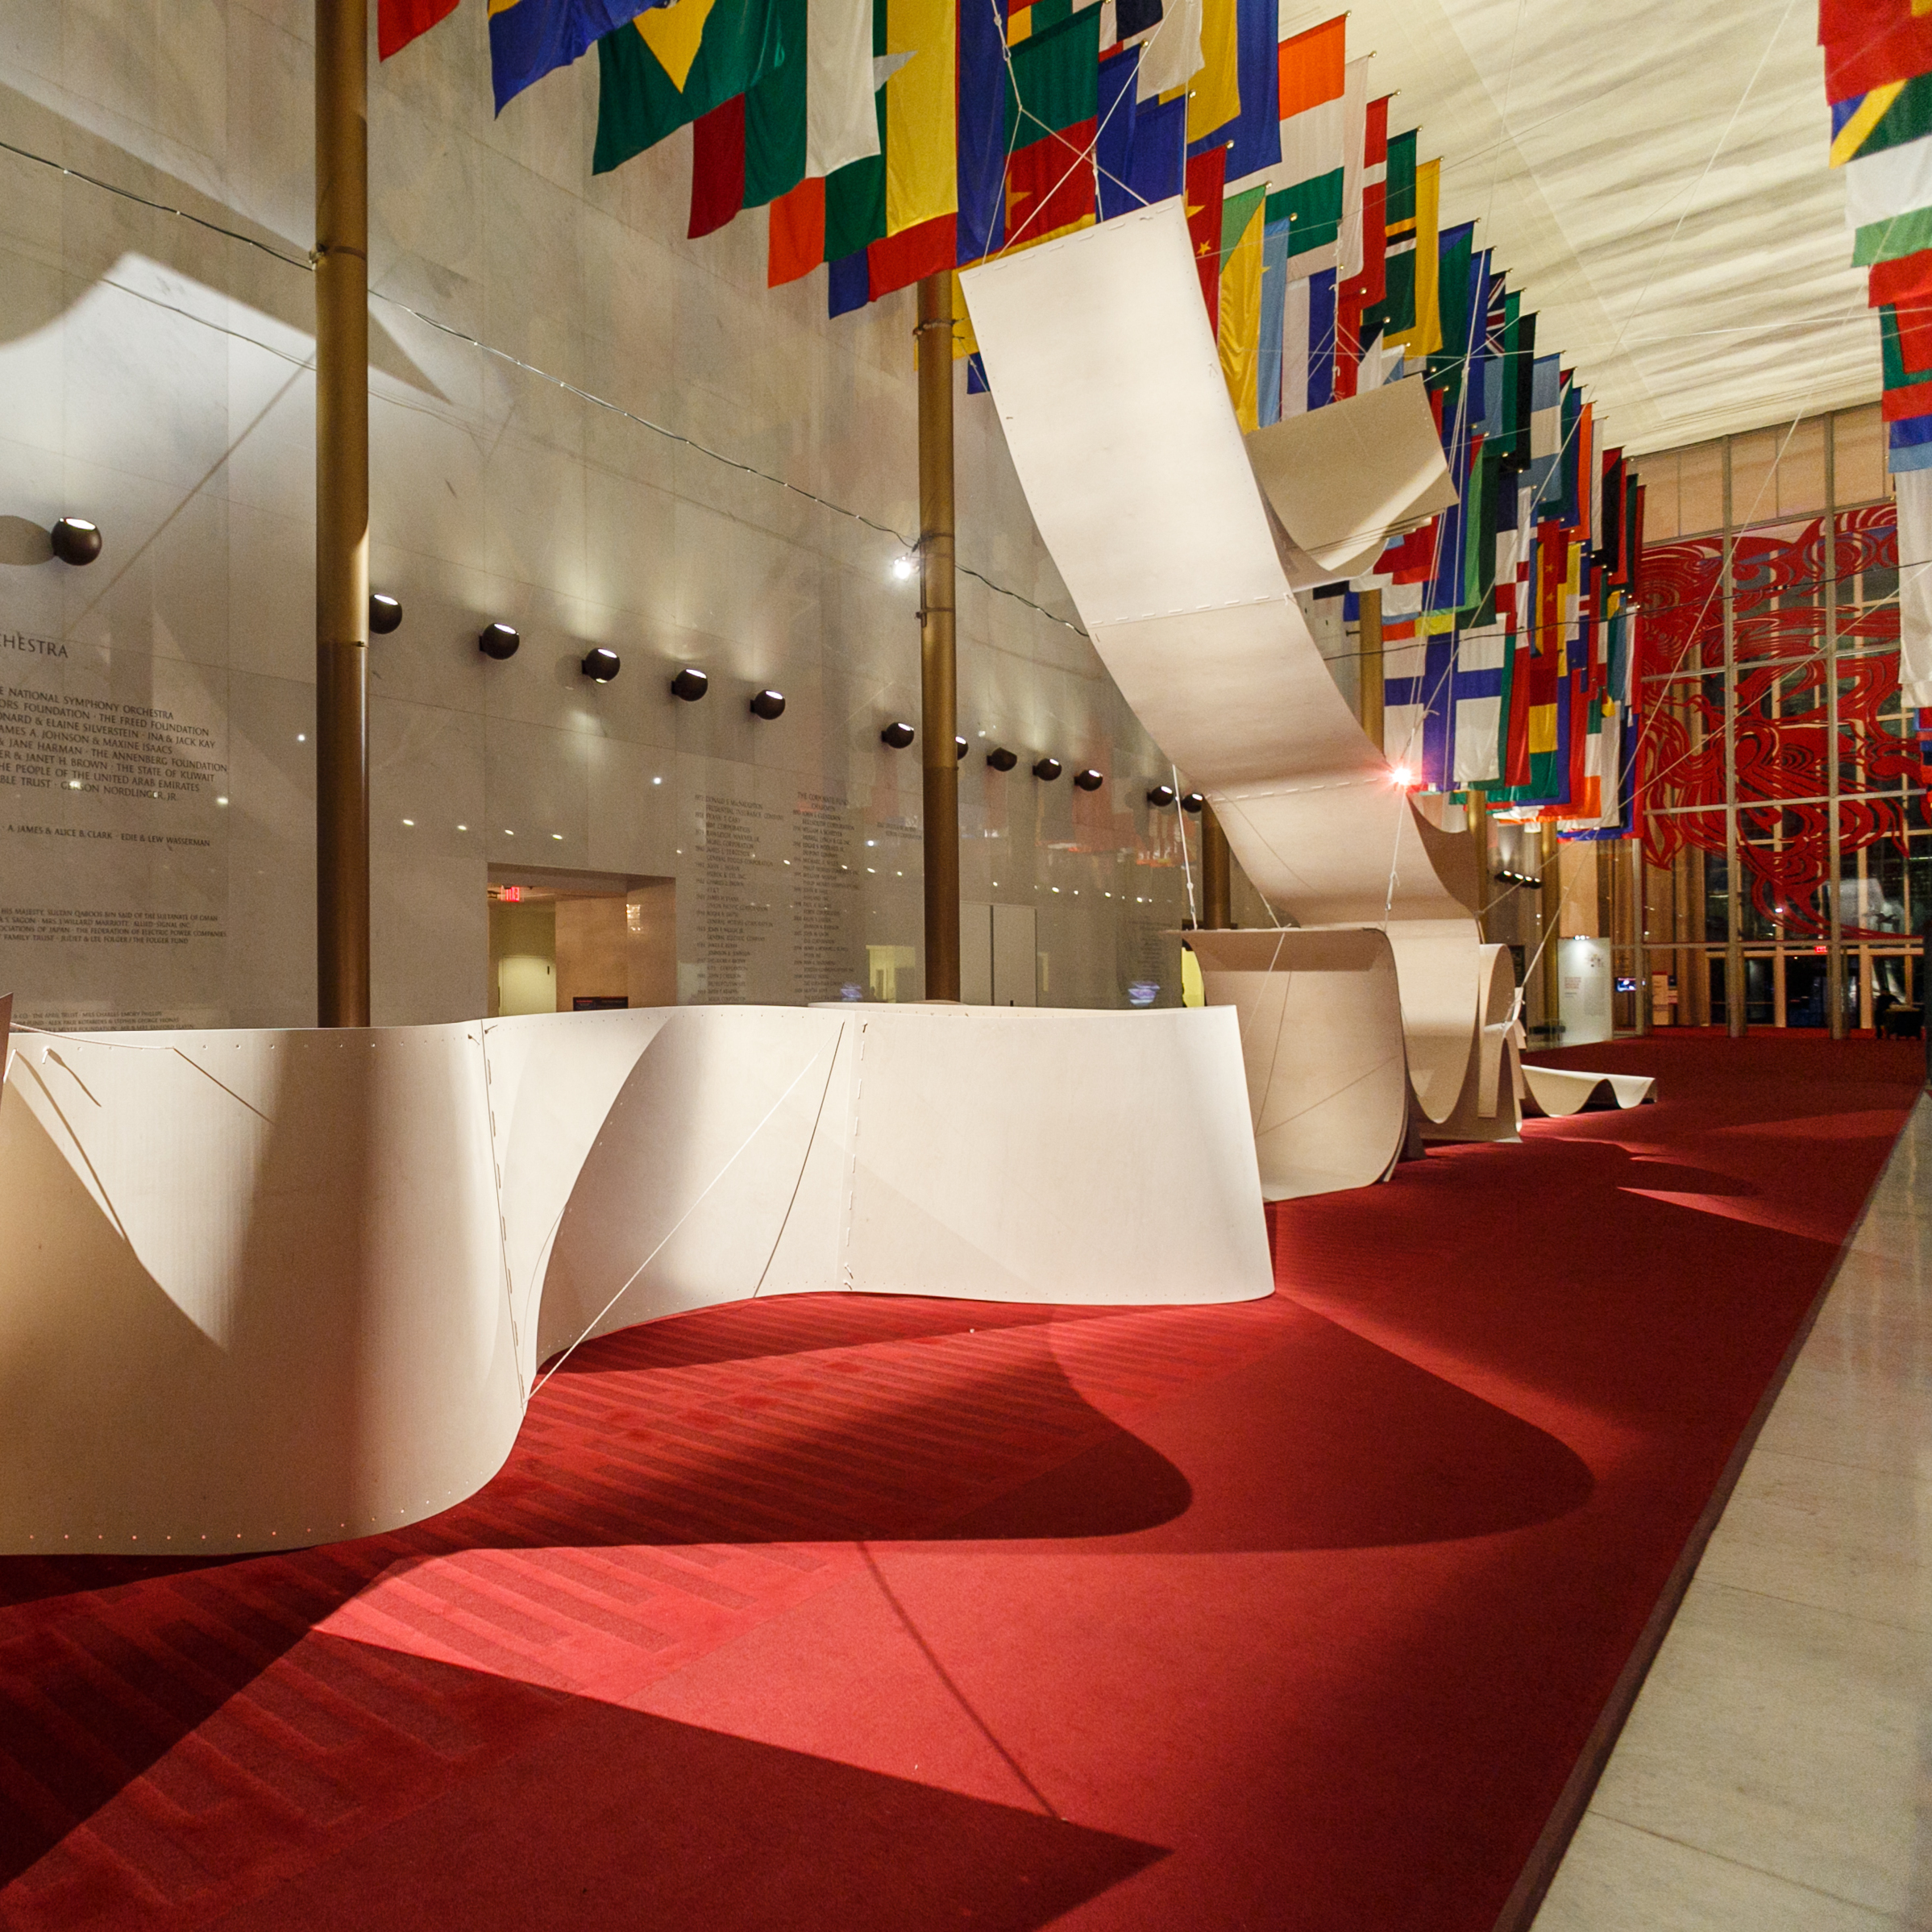 The Hall of Nations is transformed by a plywood installation called Sup-Plywood, or How to Be Singular in the Plural. Plywood is one of the most used materials in Nordic design. The installation was created by the Norwegian architecture firm Snohetta.